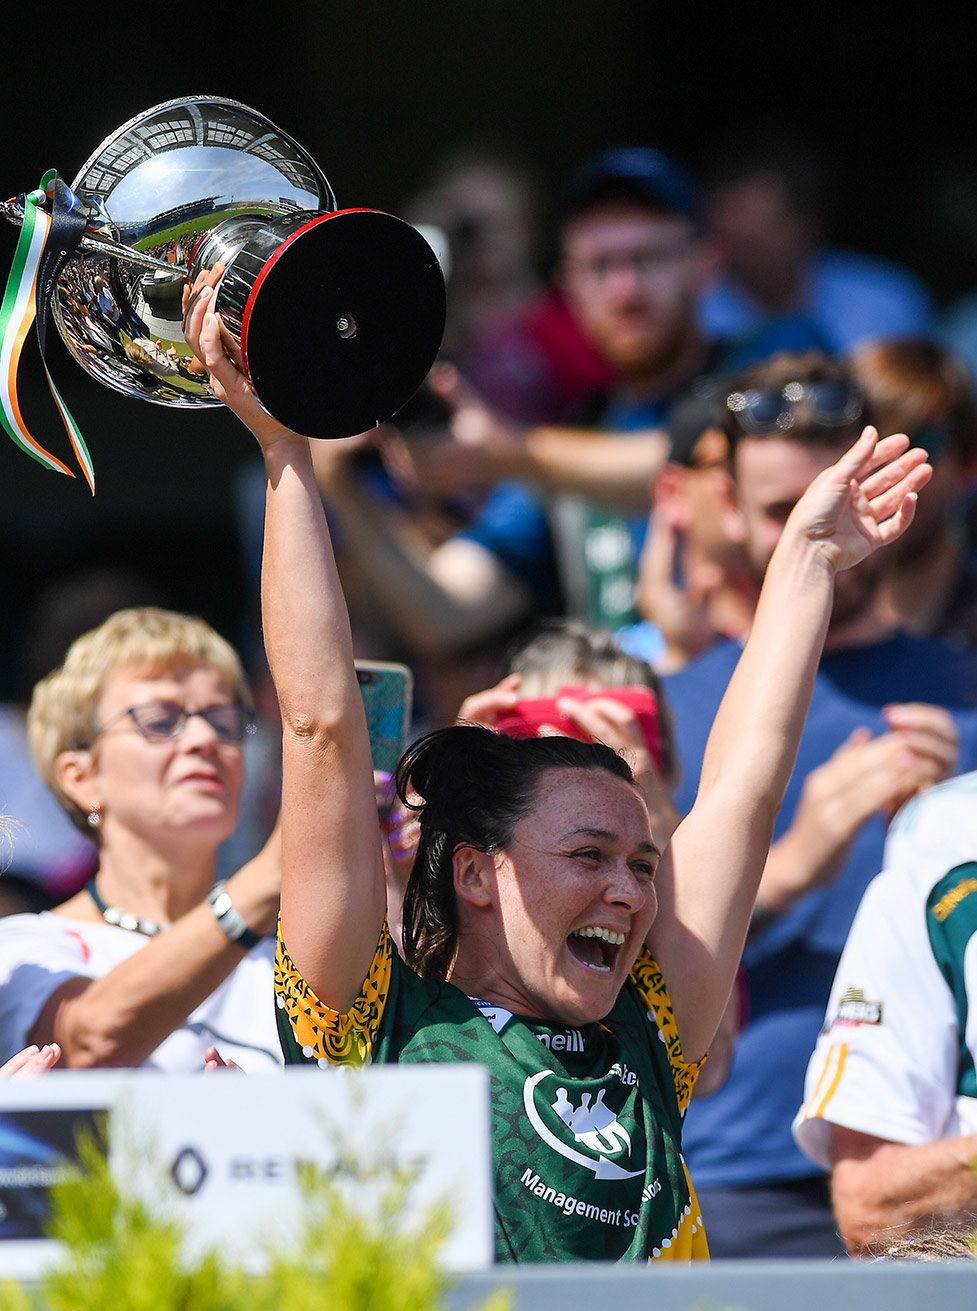 Australasia's Irish-born women's captain Caroline Kelly lifts the trophy after her team won the GAA World Games title at Croke Park. Picture: Piaras Ó Mídheach/Sportsfile